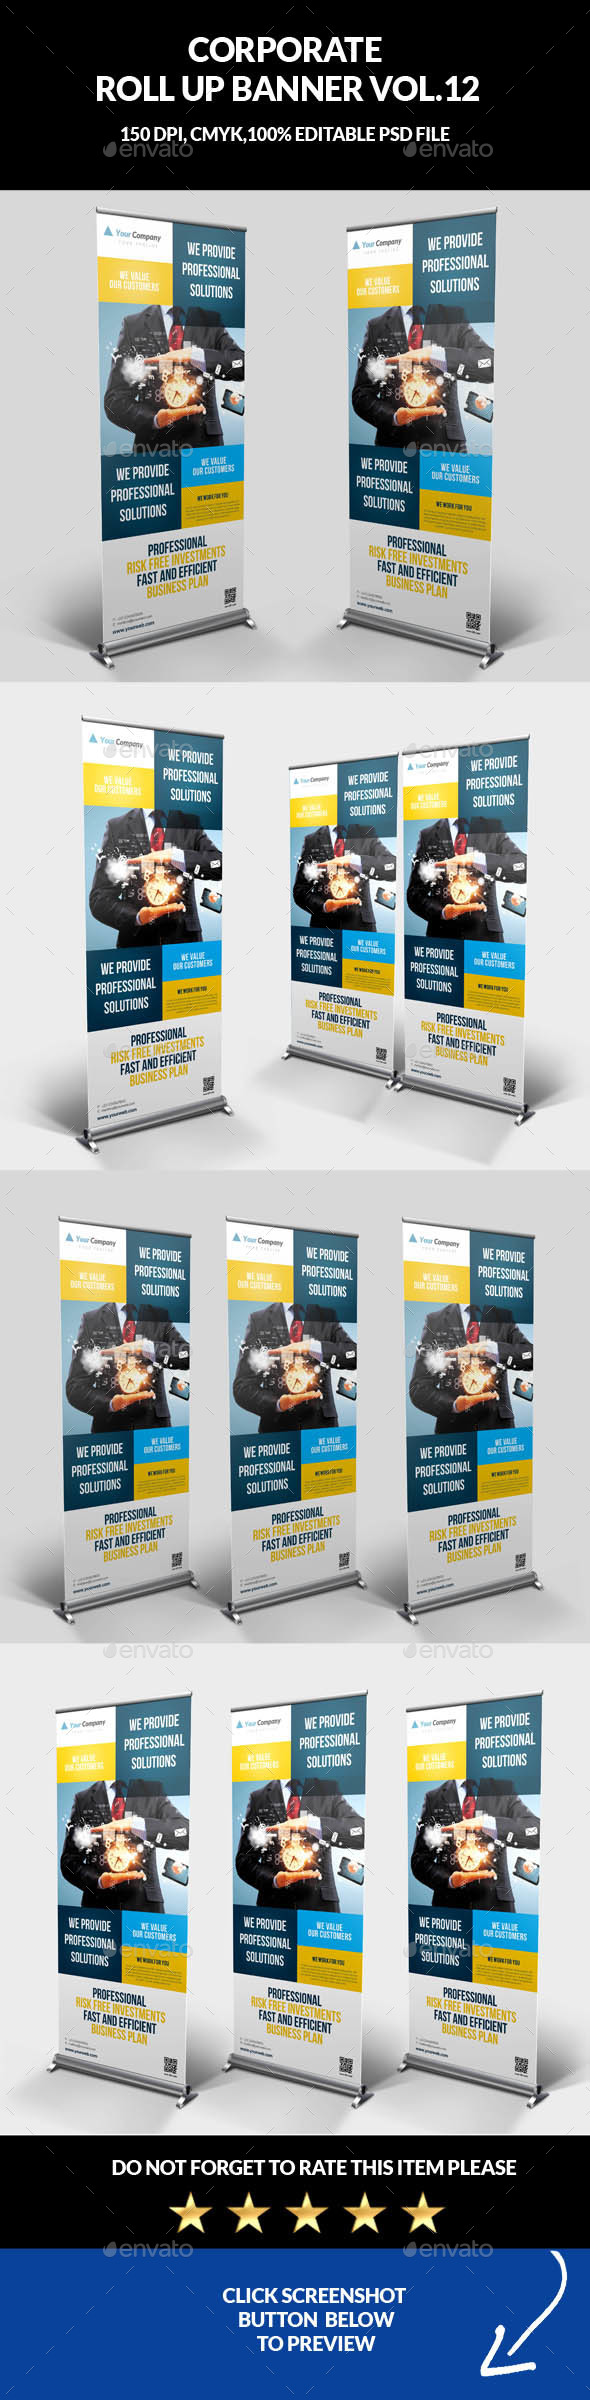 Corporate Business Roll Up Banner Vol.12 - Signage Print Templates